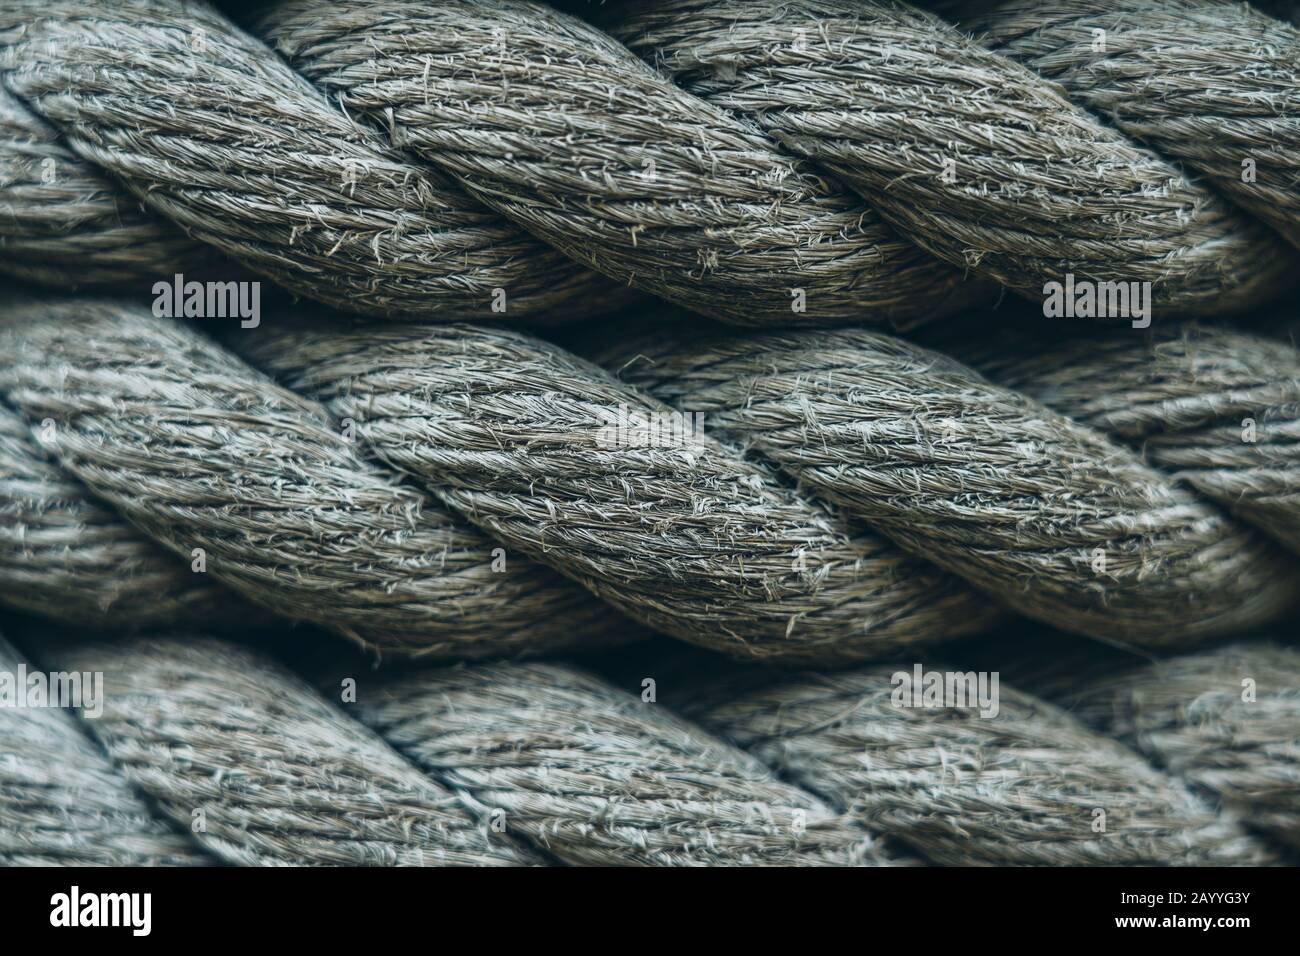 Close Up Of Hemp Rope Background Or Textures Stock Photo Alamy